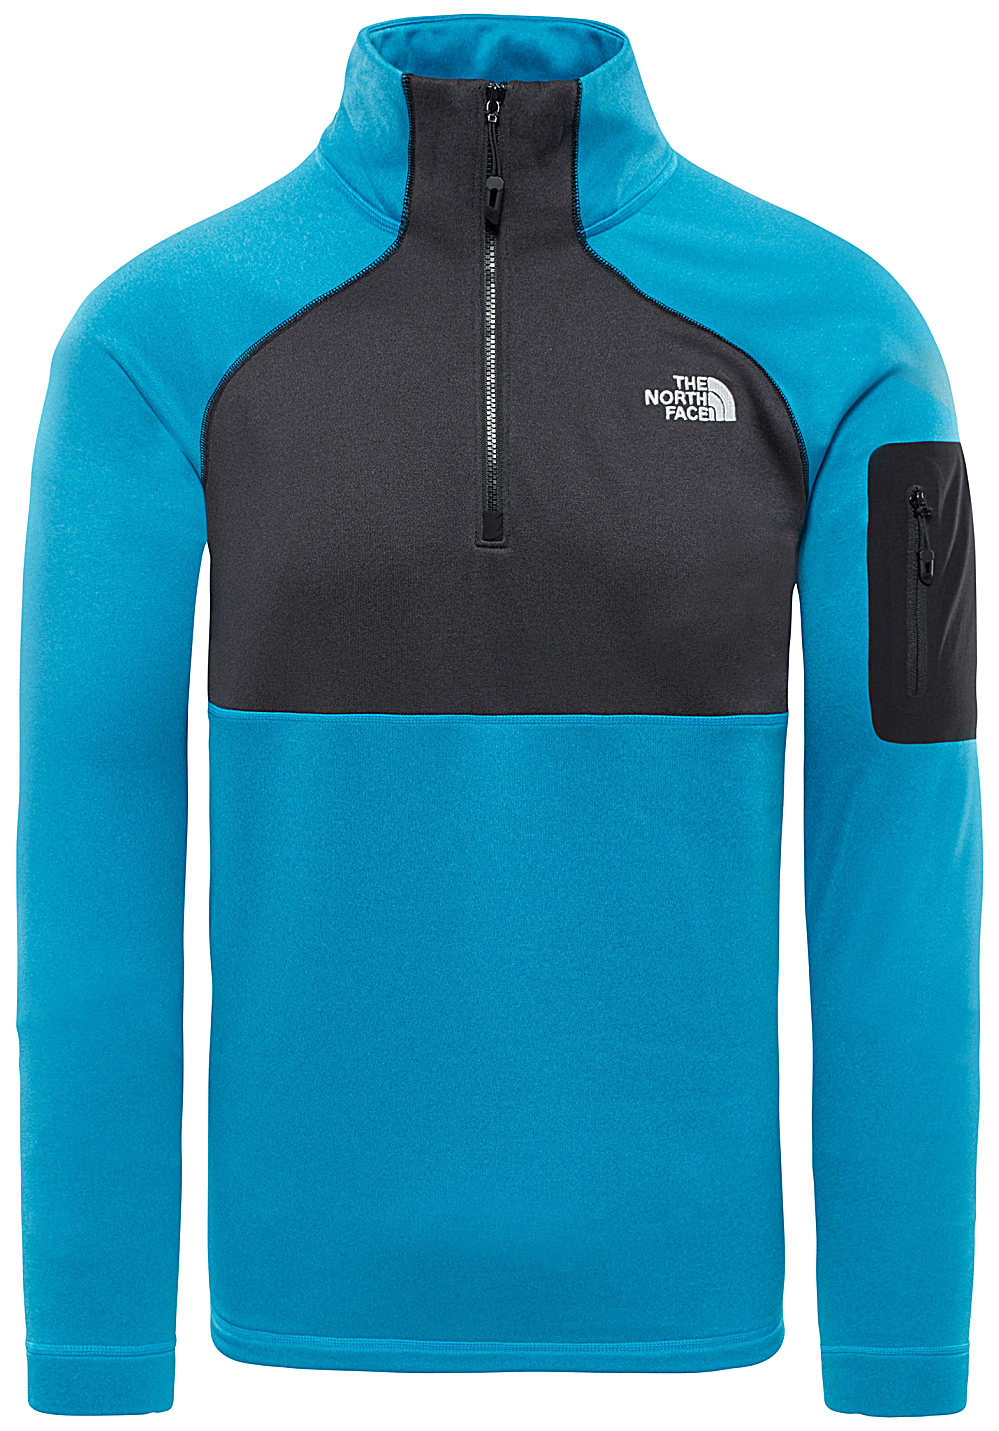 orologio c81f7 67373 THE NORTH FACE Impendor Power Dry 1/4 Zip - Maglione in pile per Uomo - Blu